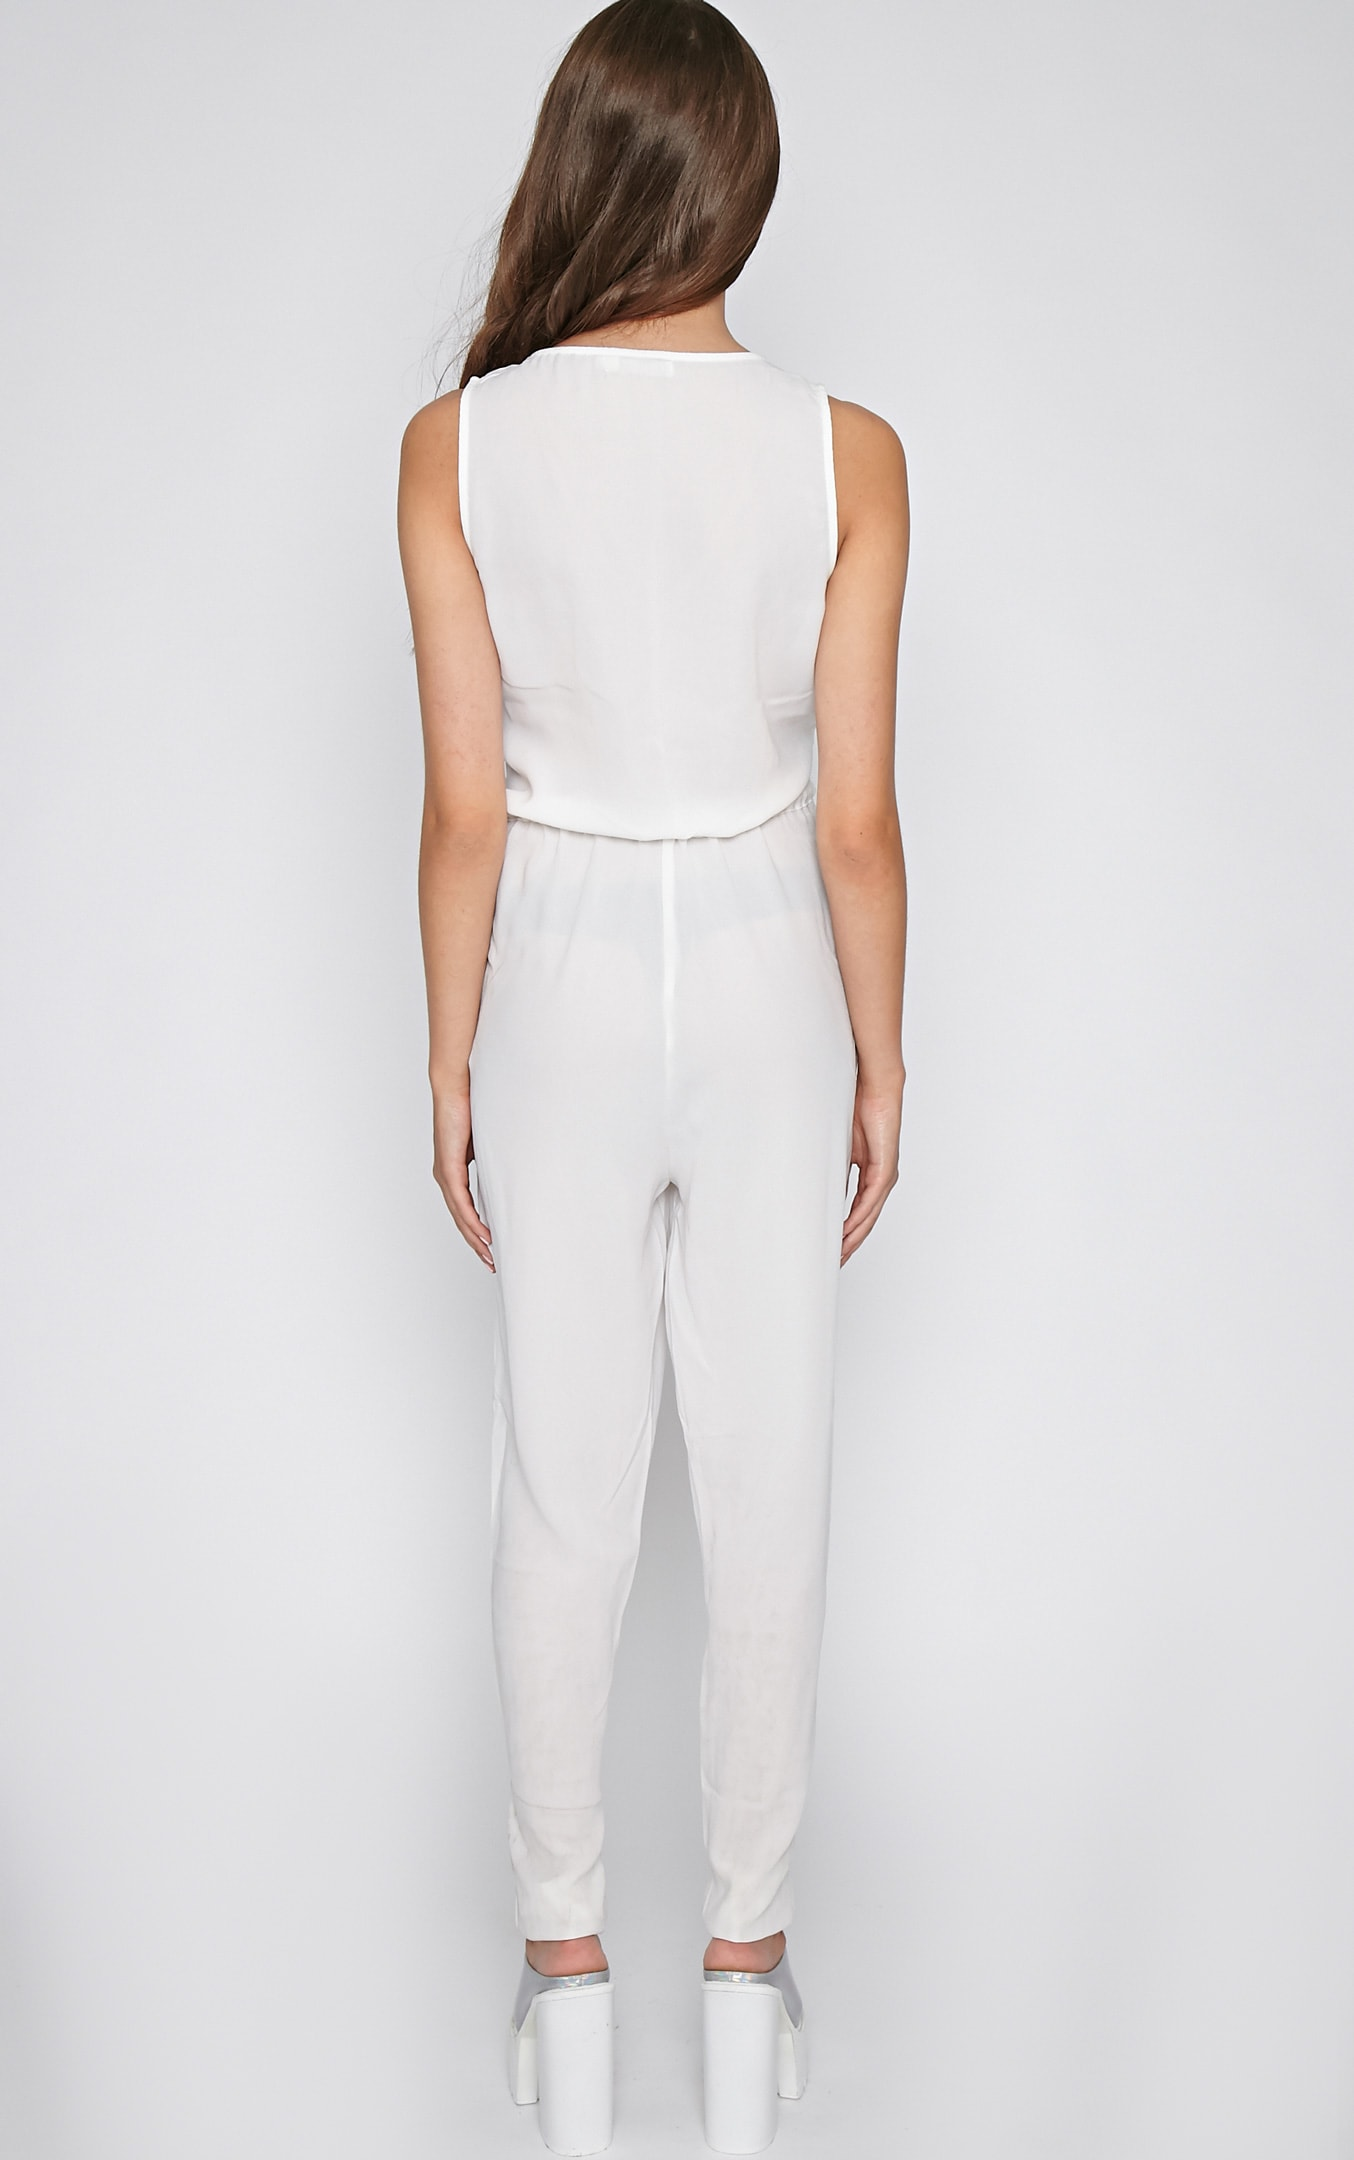 Suki White Off-Duty Jumpsuit 2